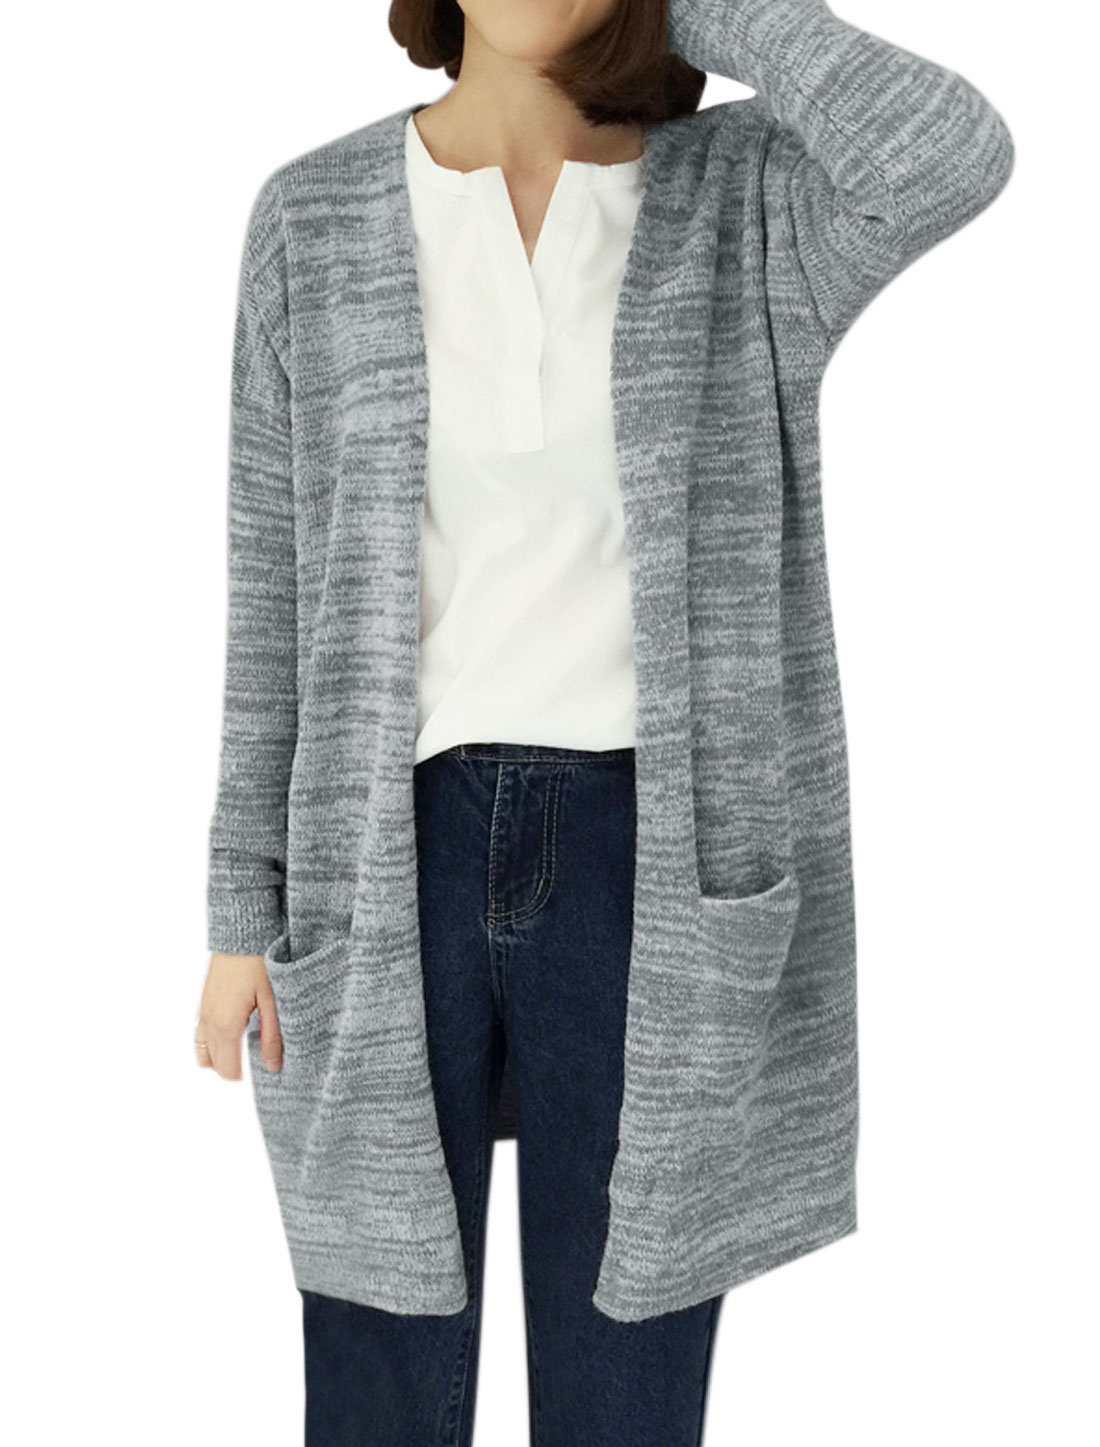 Women Front Opening Two Pockets Tunic Sweater Cardigan Gray XS